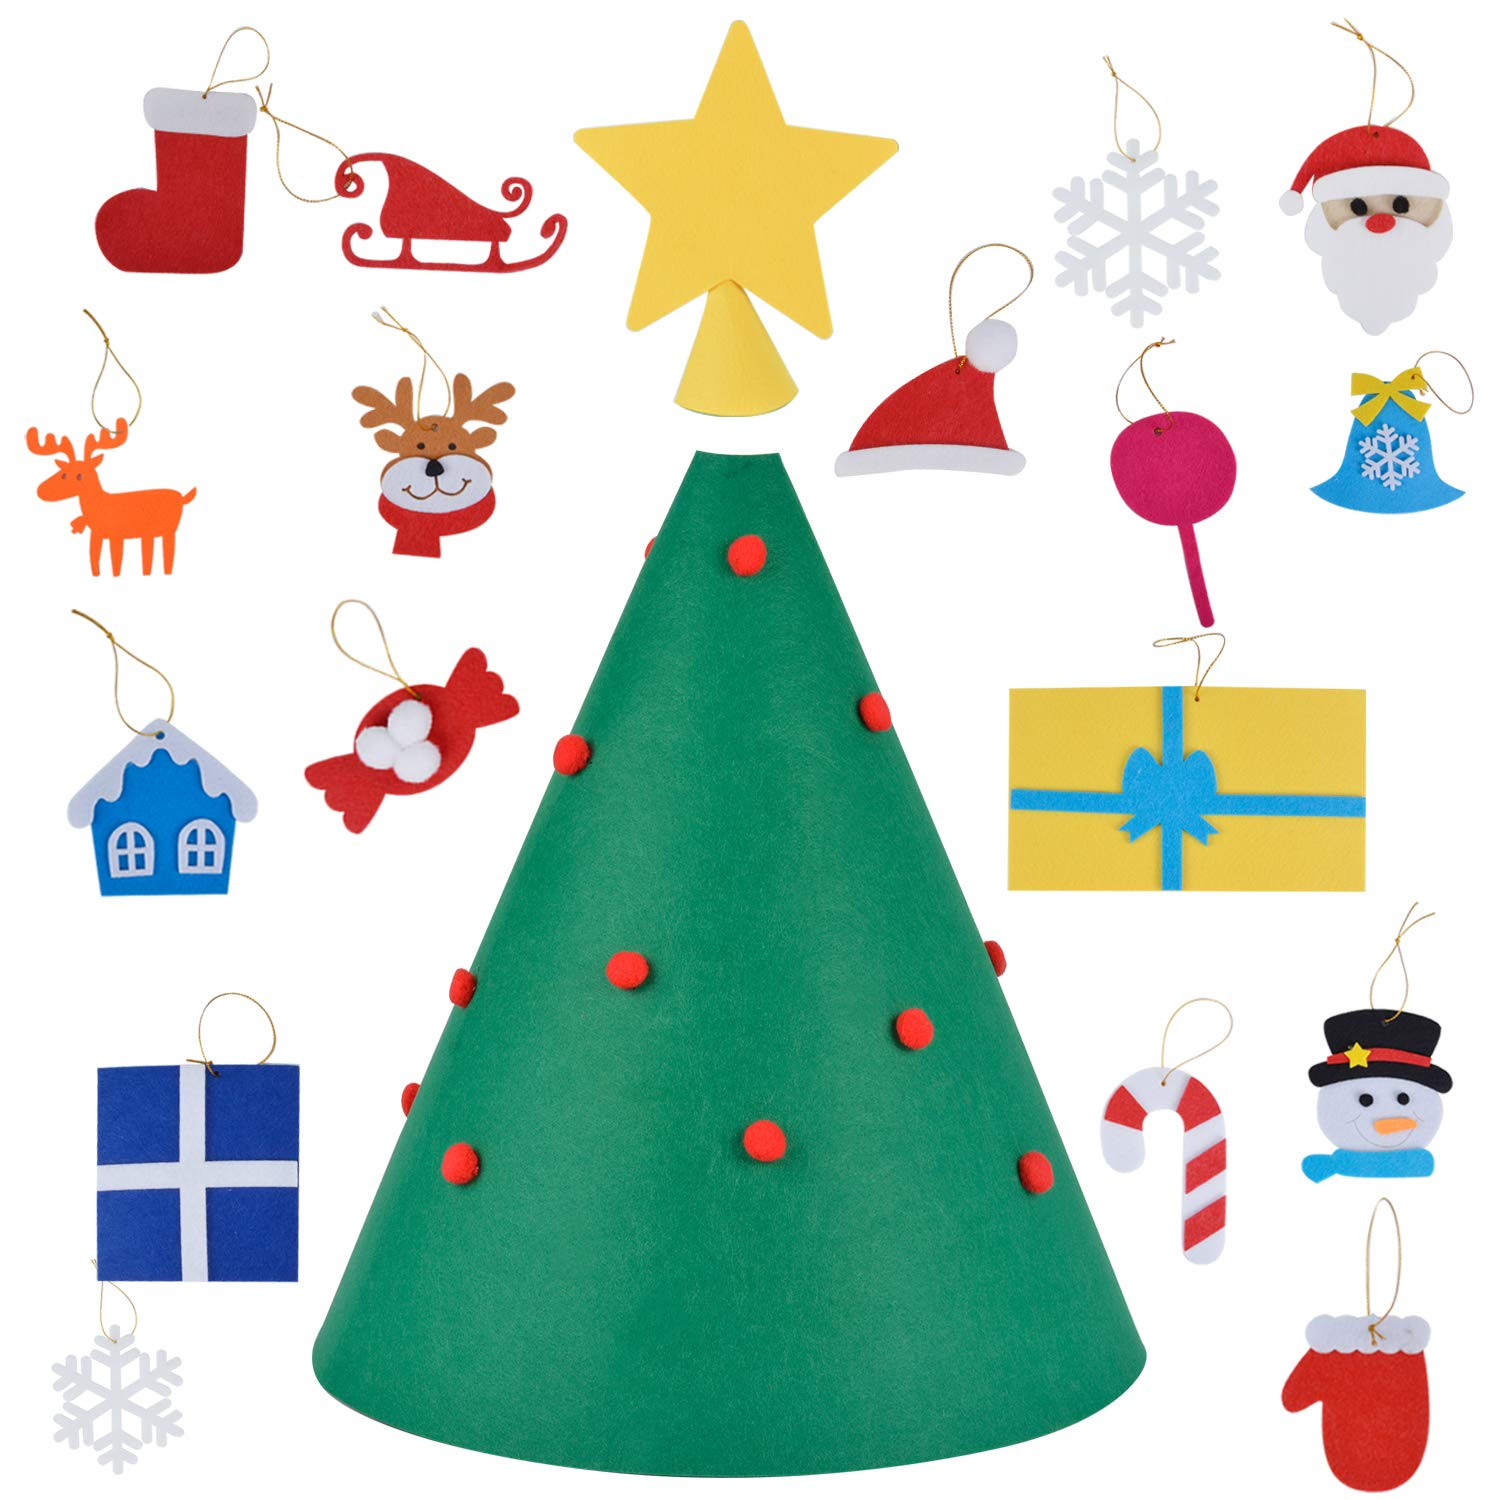 B bangcool Felt Christmas Tree for Kids 18PCS Christmas Craft Kit Xmas Tree DIY Handmade Ornament Kit Craft Supplies